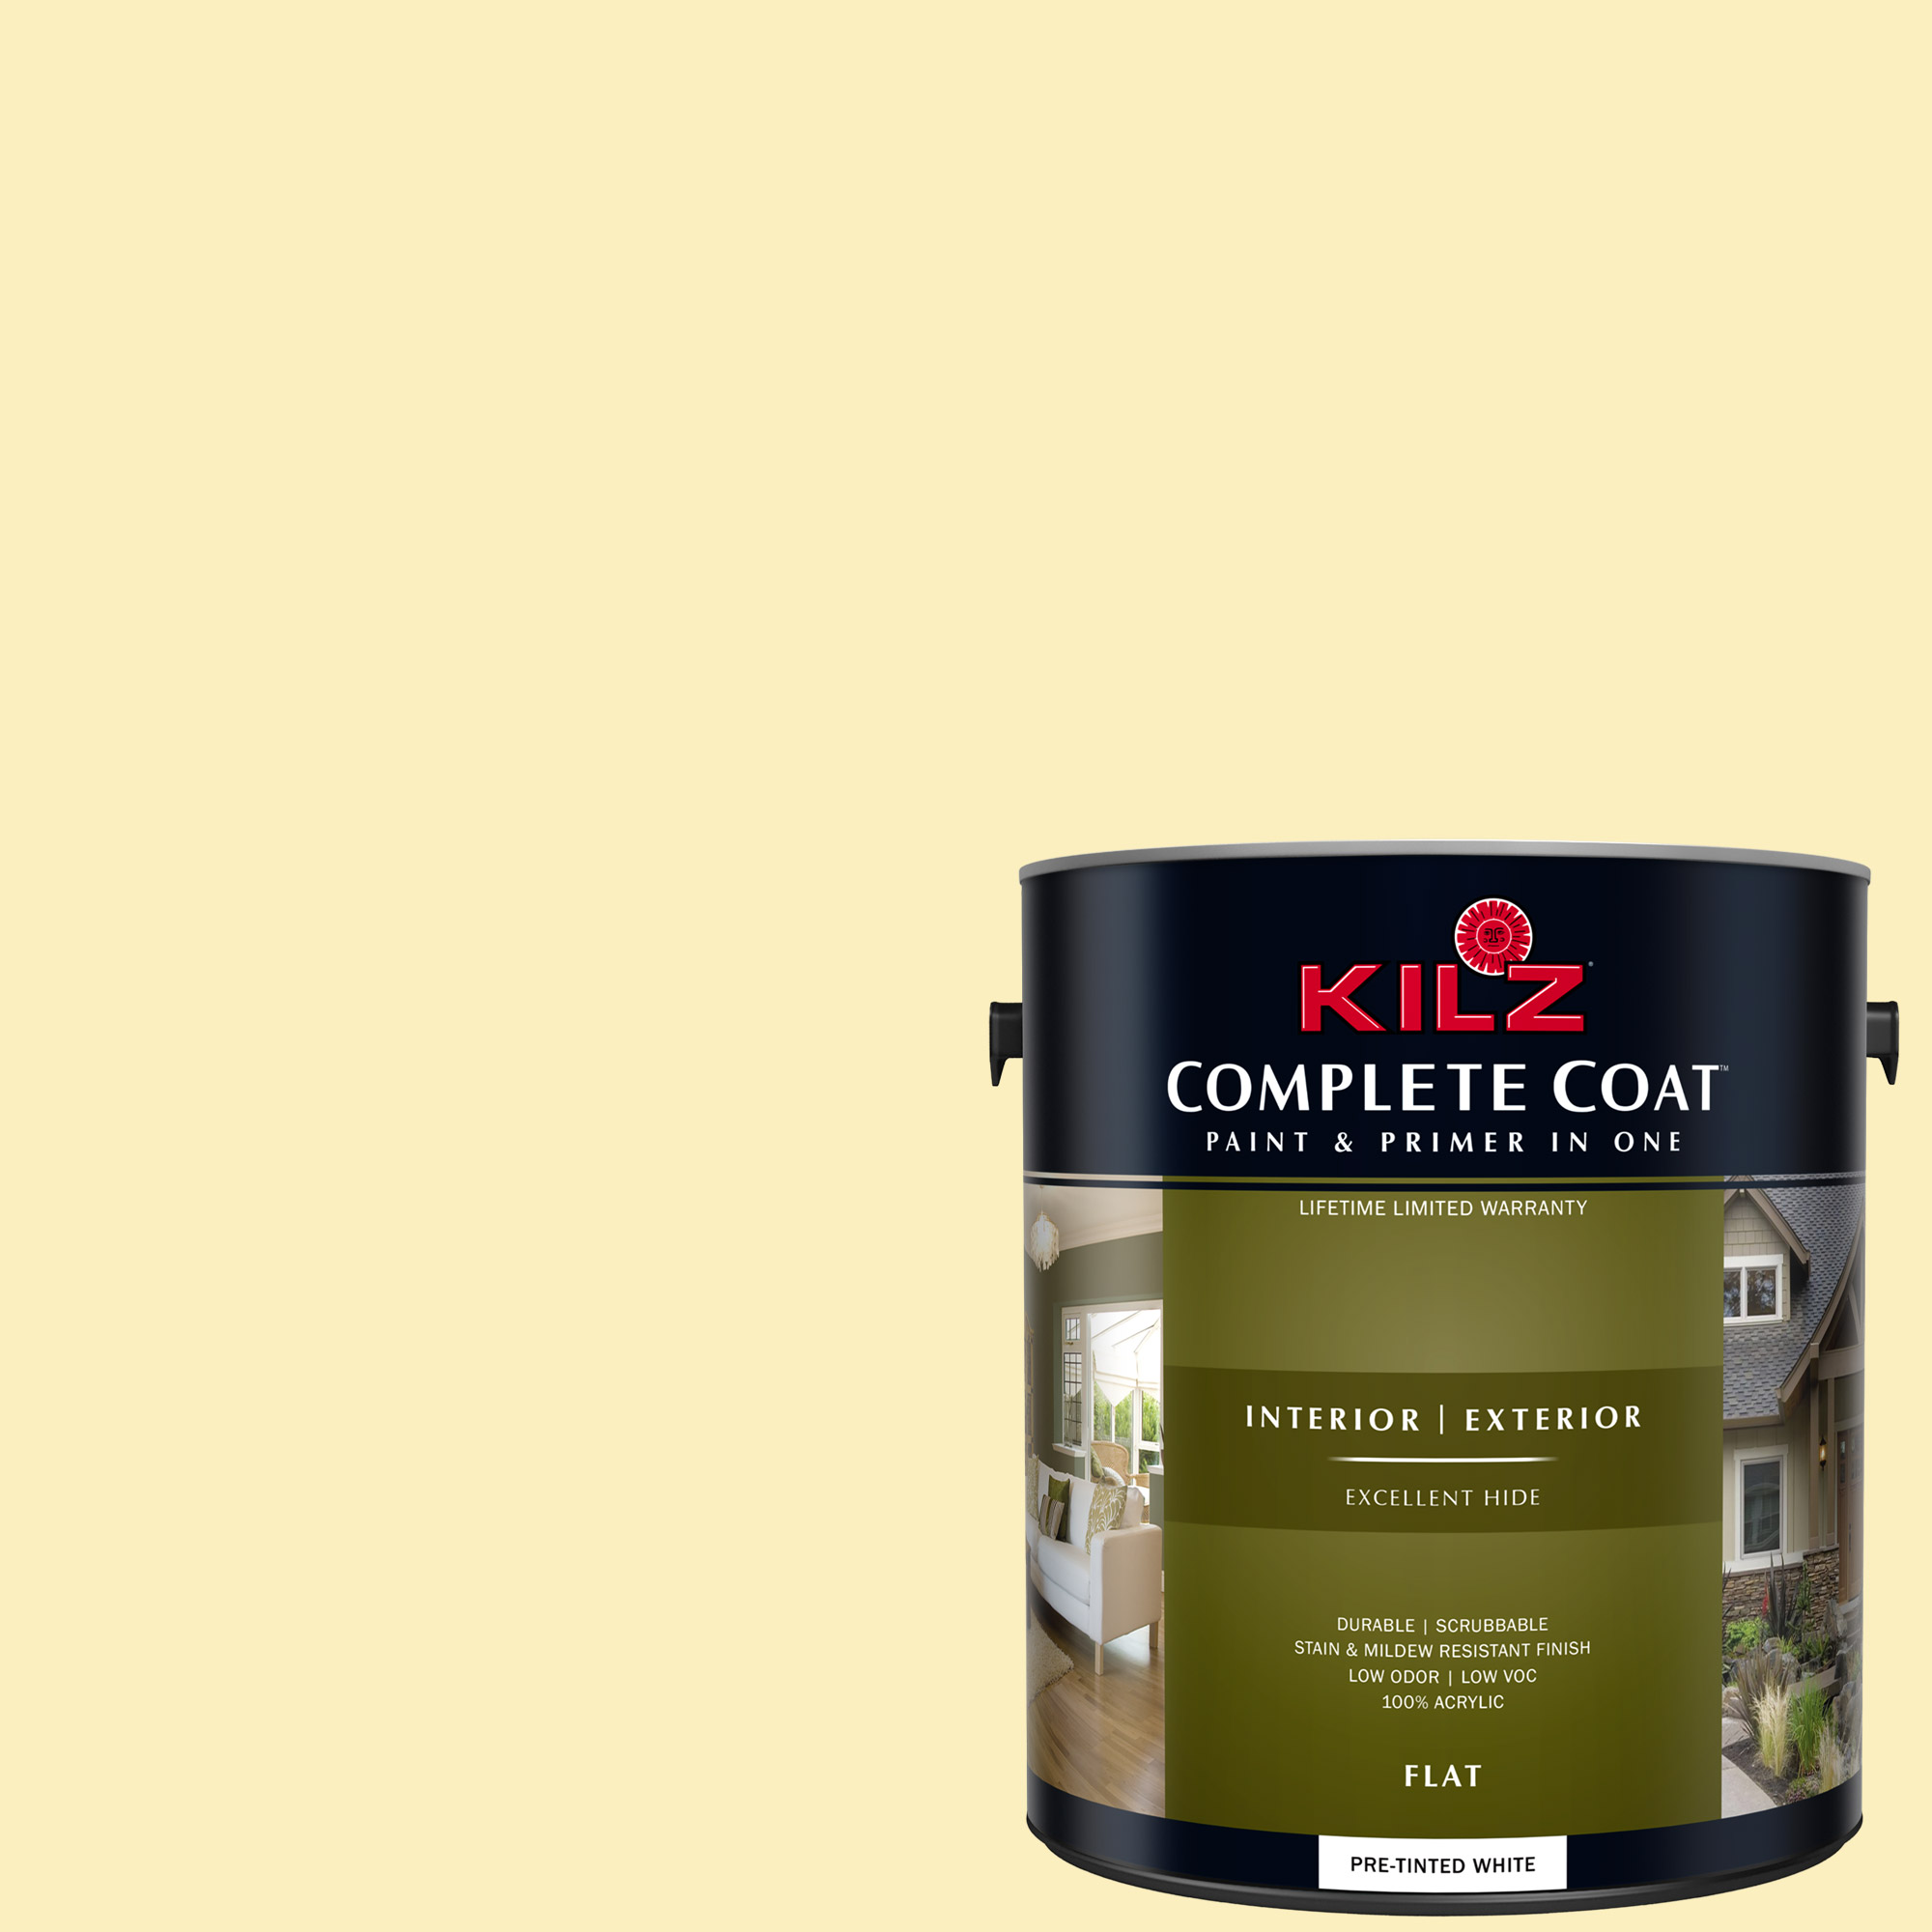 KILZ COMPLETE COAT Interior/Exterior Paint & Primer in One #LE220-01 Sticky Note